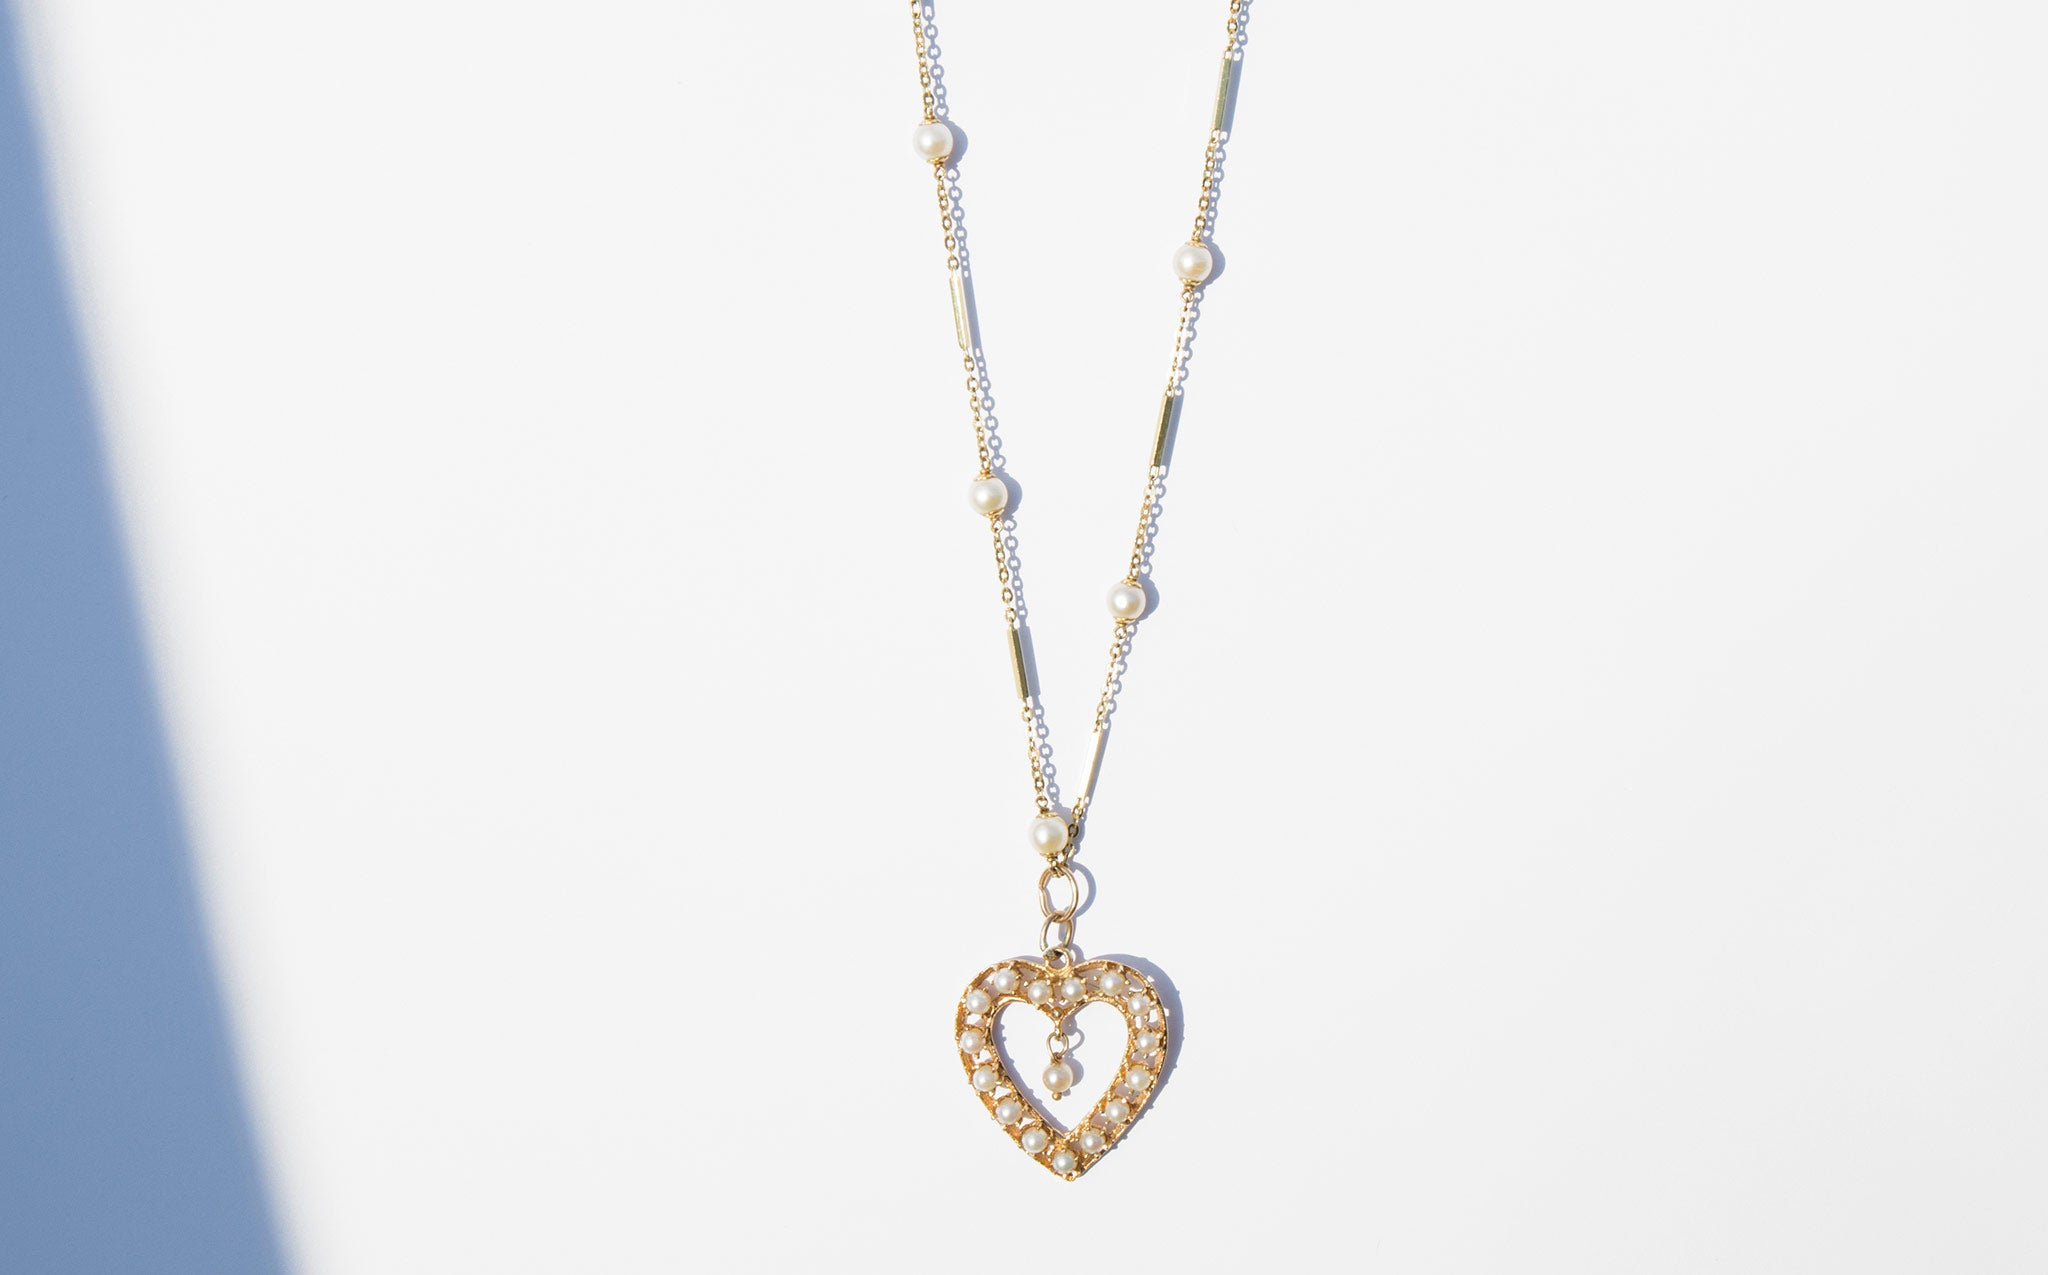 Bared Heart Necklace